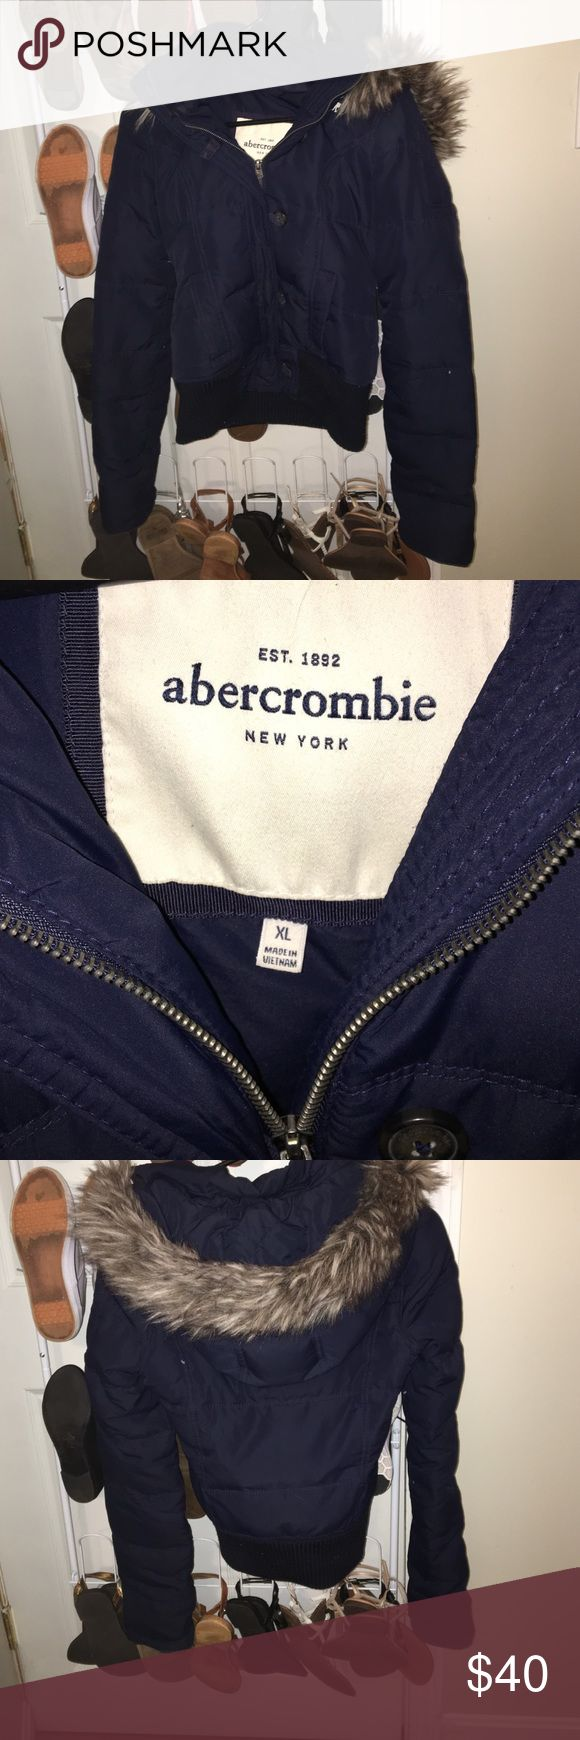 Abercrombie KIDS winter jacket Abercrombie kids xl which fits like an adult xs. Navy blue. Excellent condition only worn for one winter abercrombie kids Jackets & Coats Puffers